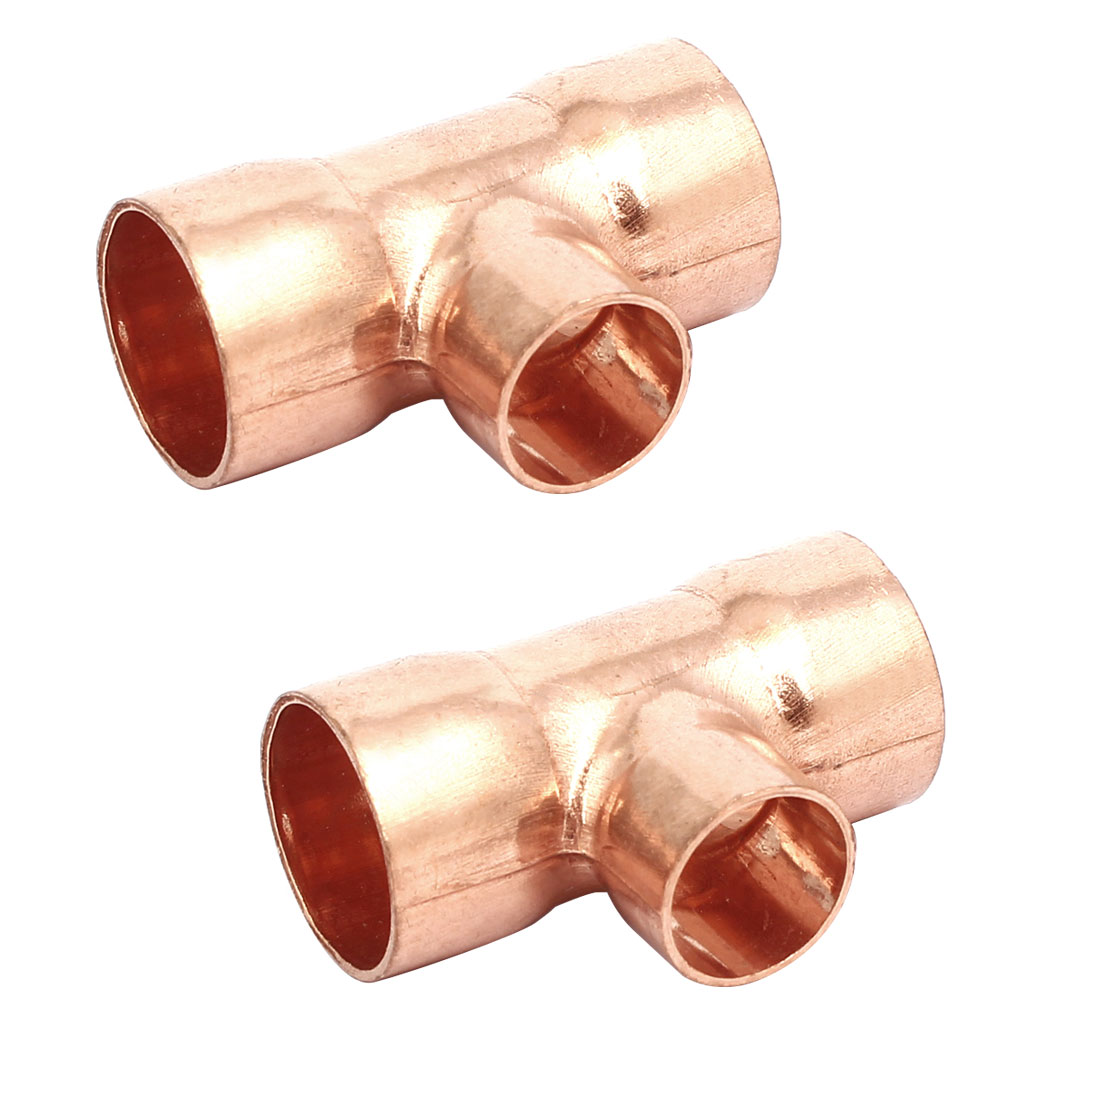 22mmx16mm Copper Tee Reducing Fitting Air Conditioner Plumbing Accessory 2pcs